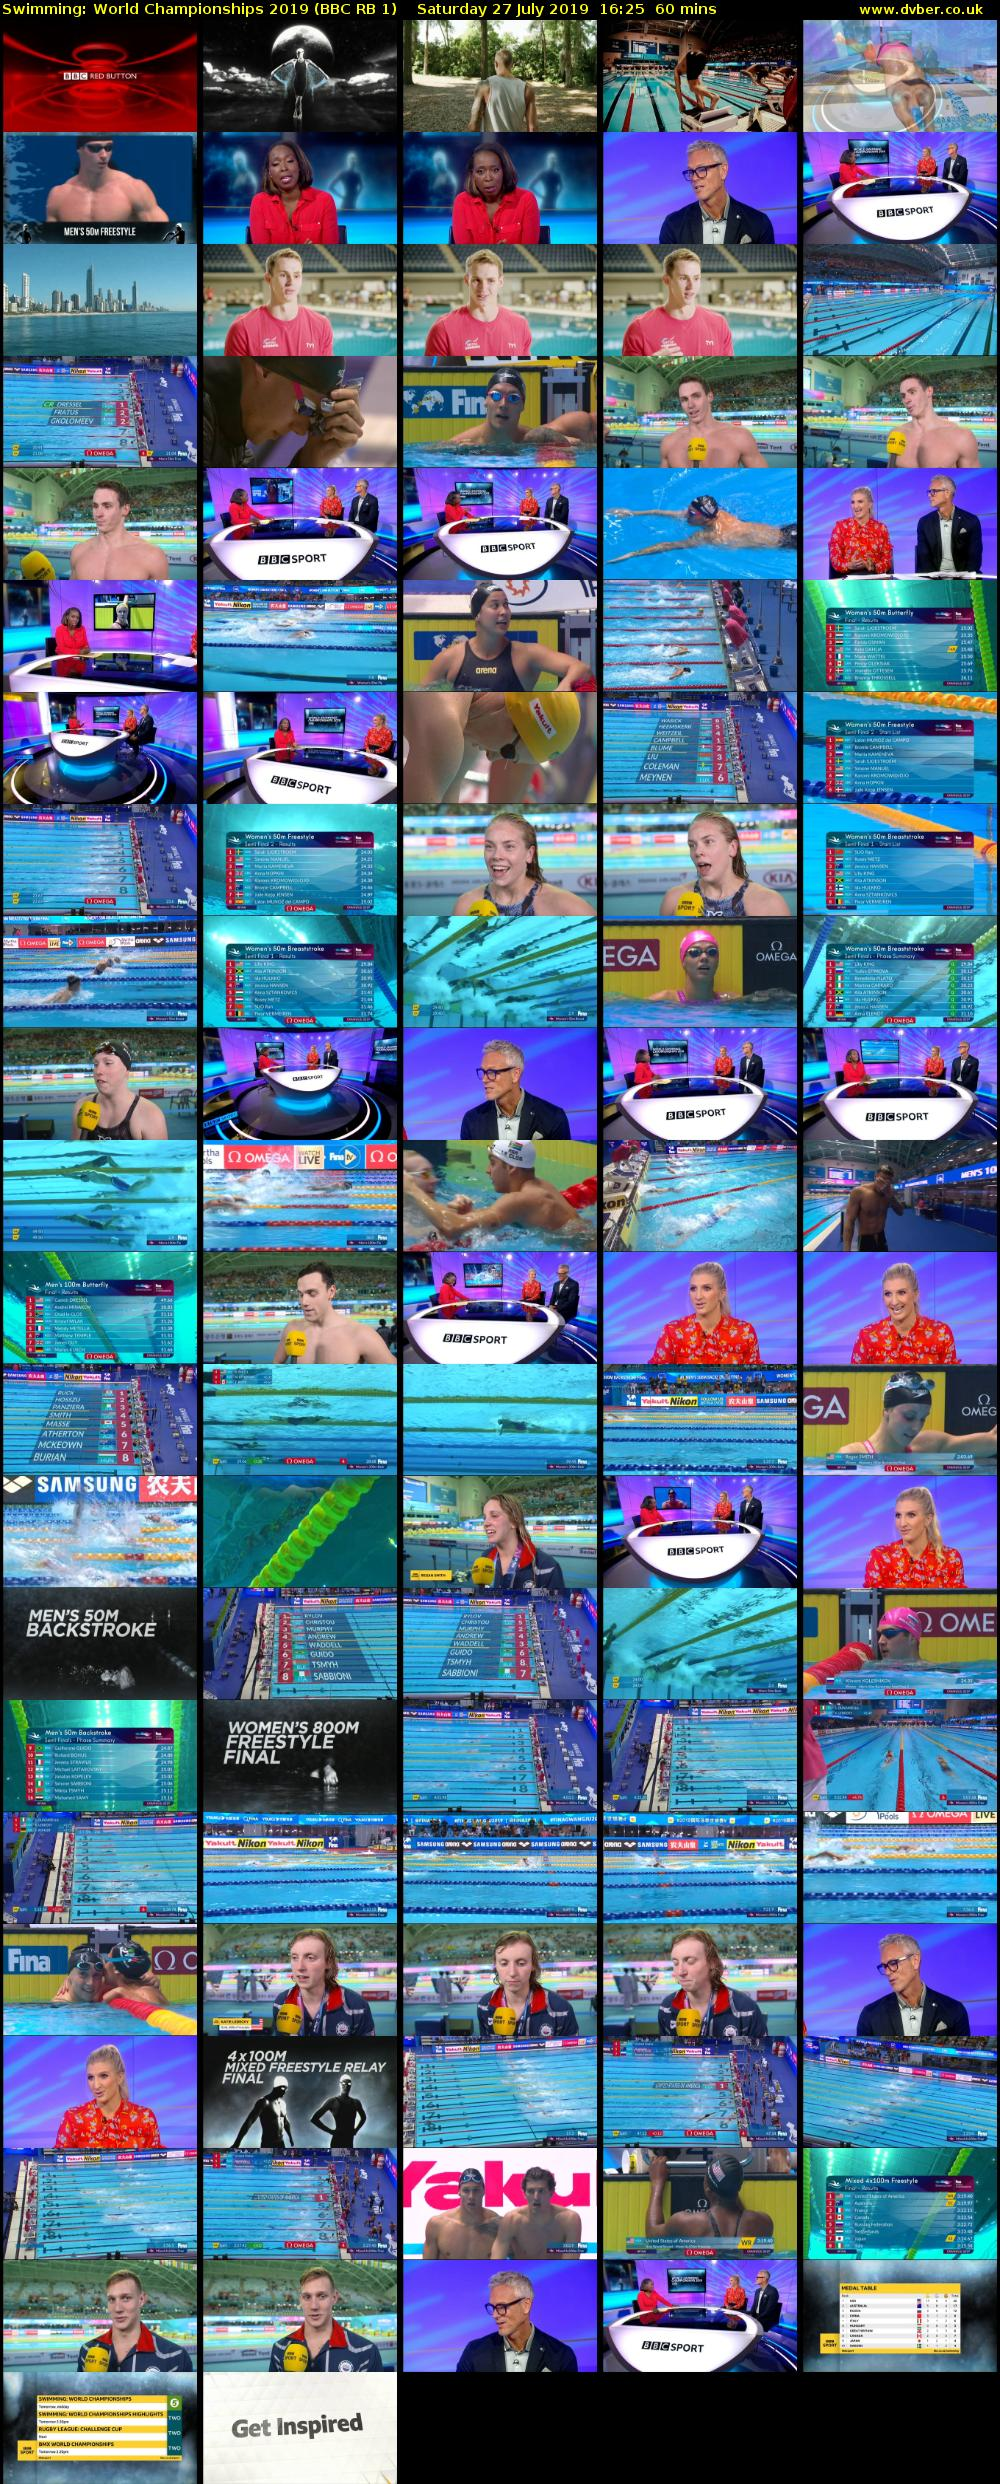 Swimming: World Championships 2019 (BBC RB 1) Saturday 27 July 2019 16:25 - 17:25